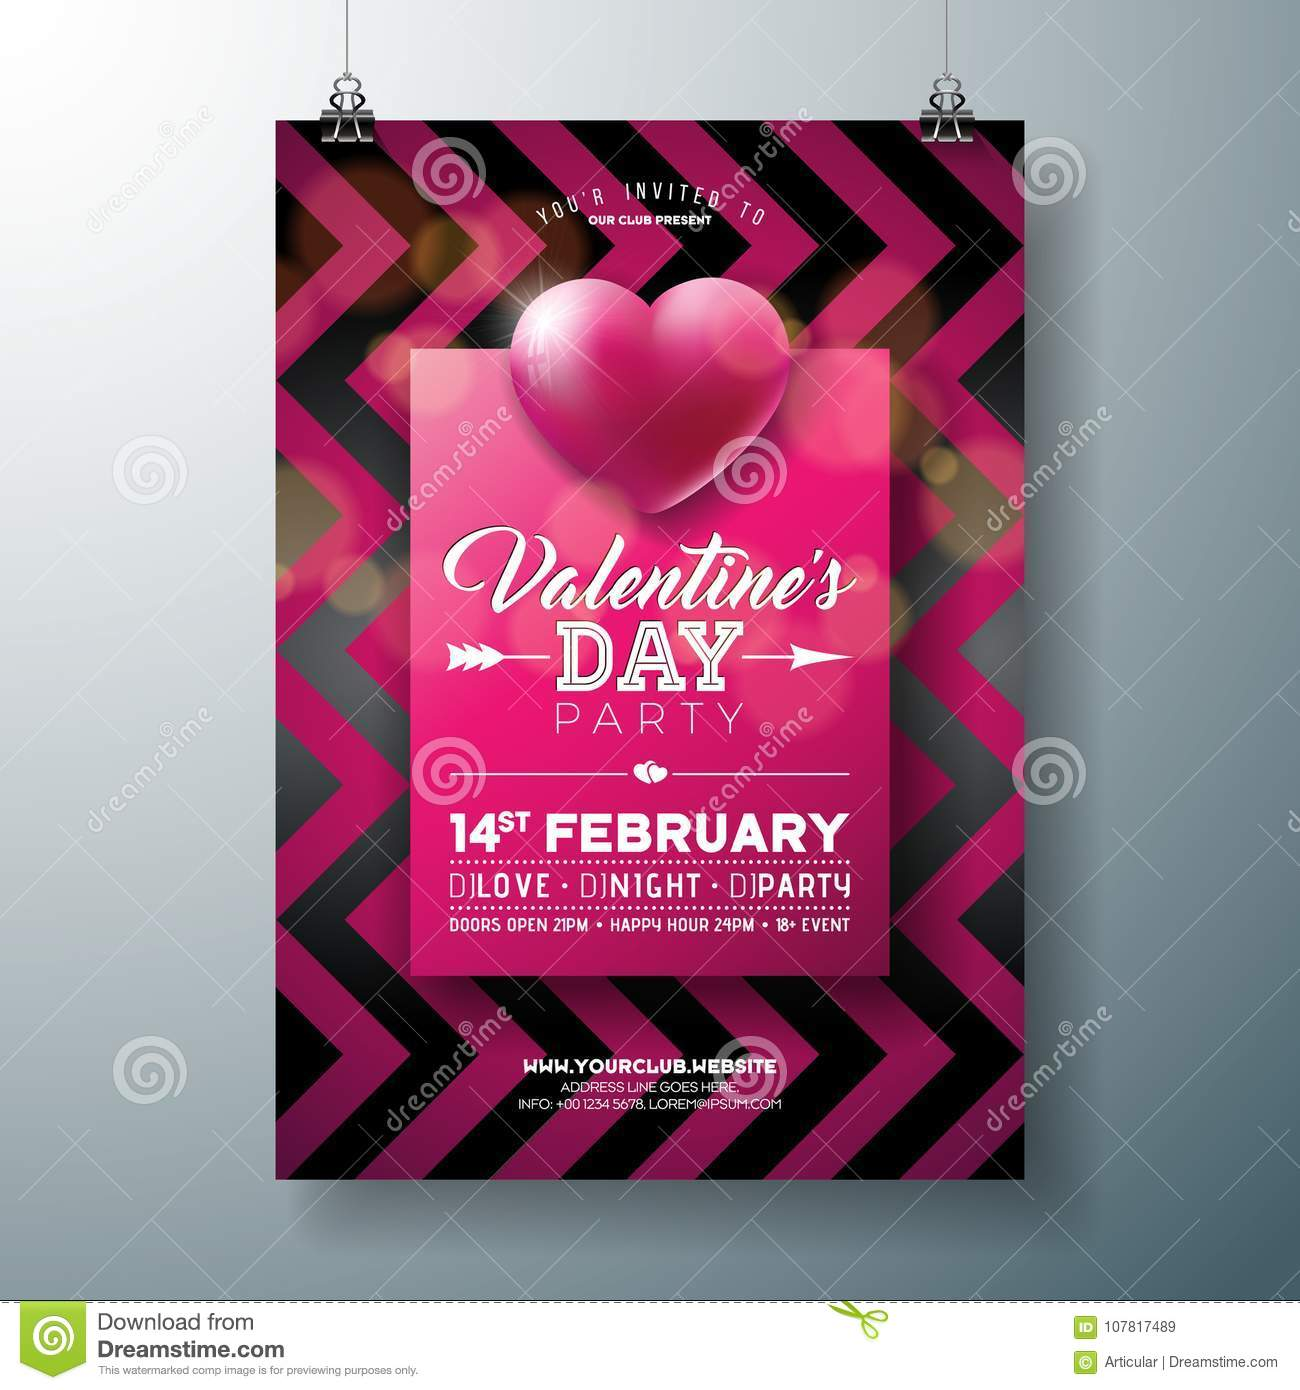 valentines-dating-card-flyer-template